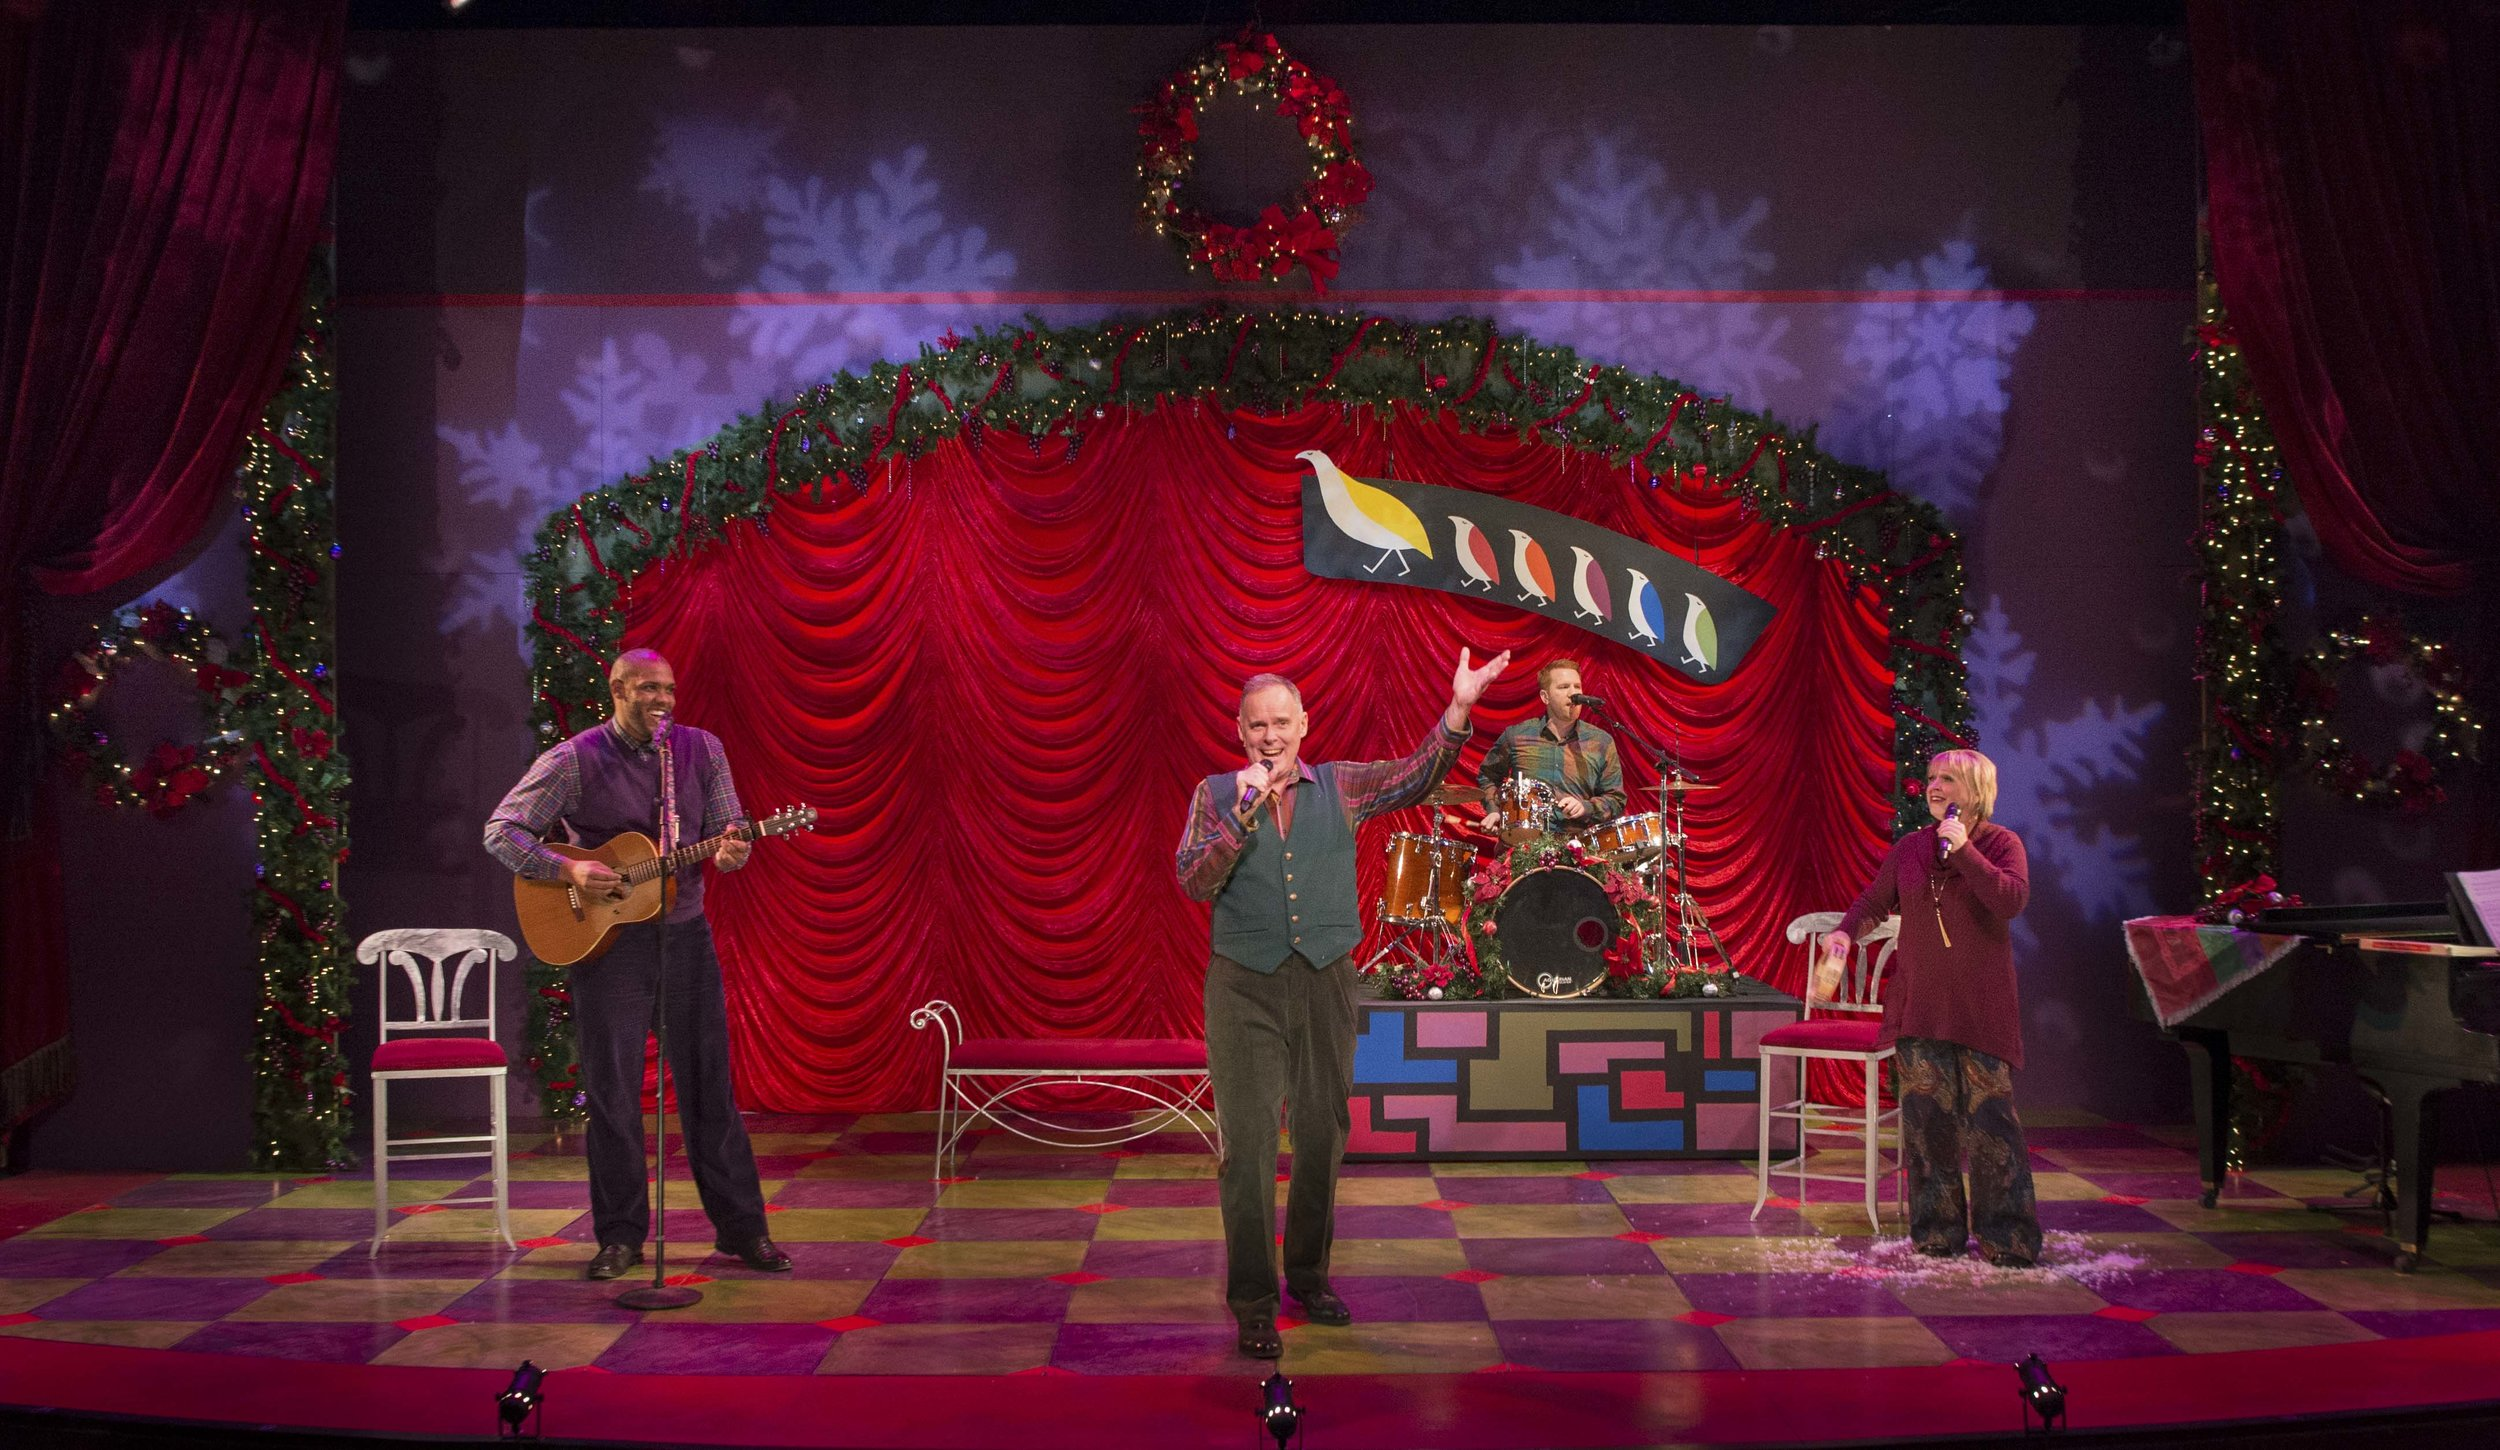 """Tod Petersen (center) leads a band of carolers through a Partridge Family-esque tune in his largely one-man show, Theater Latté Da's """"A Christmas Carole Petersen."""" Photos by Allen Weeks"""